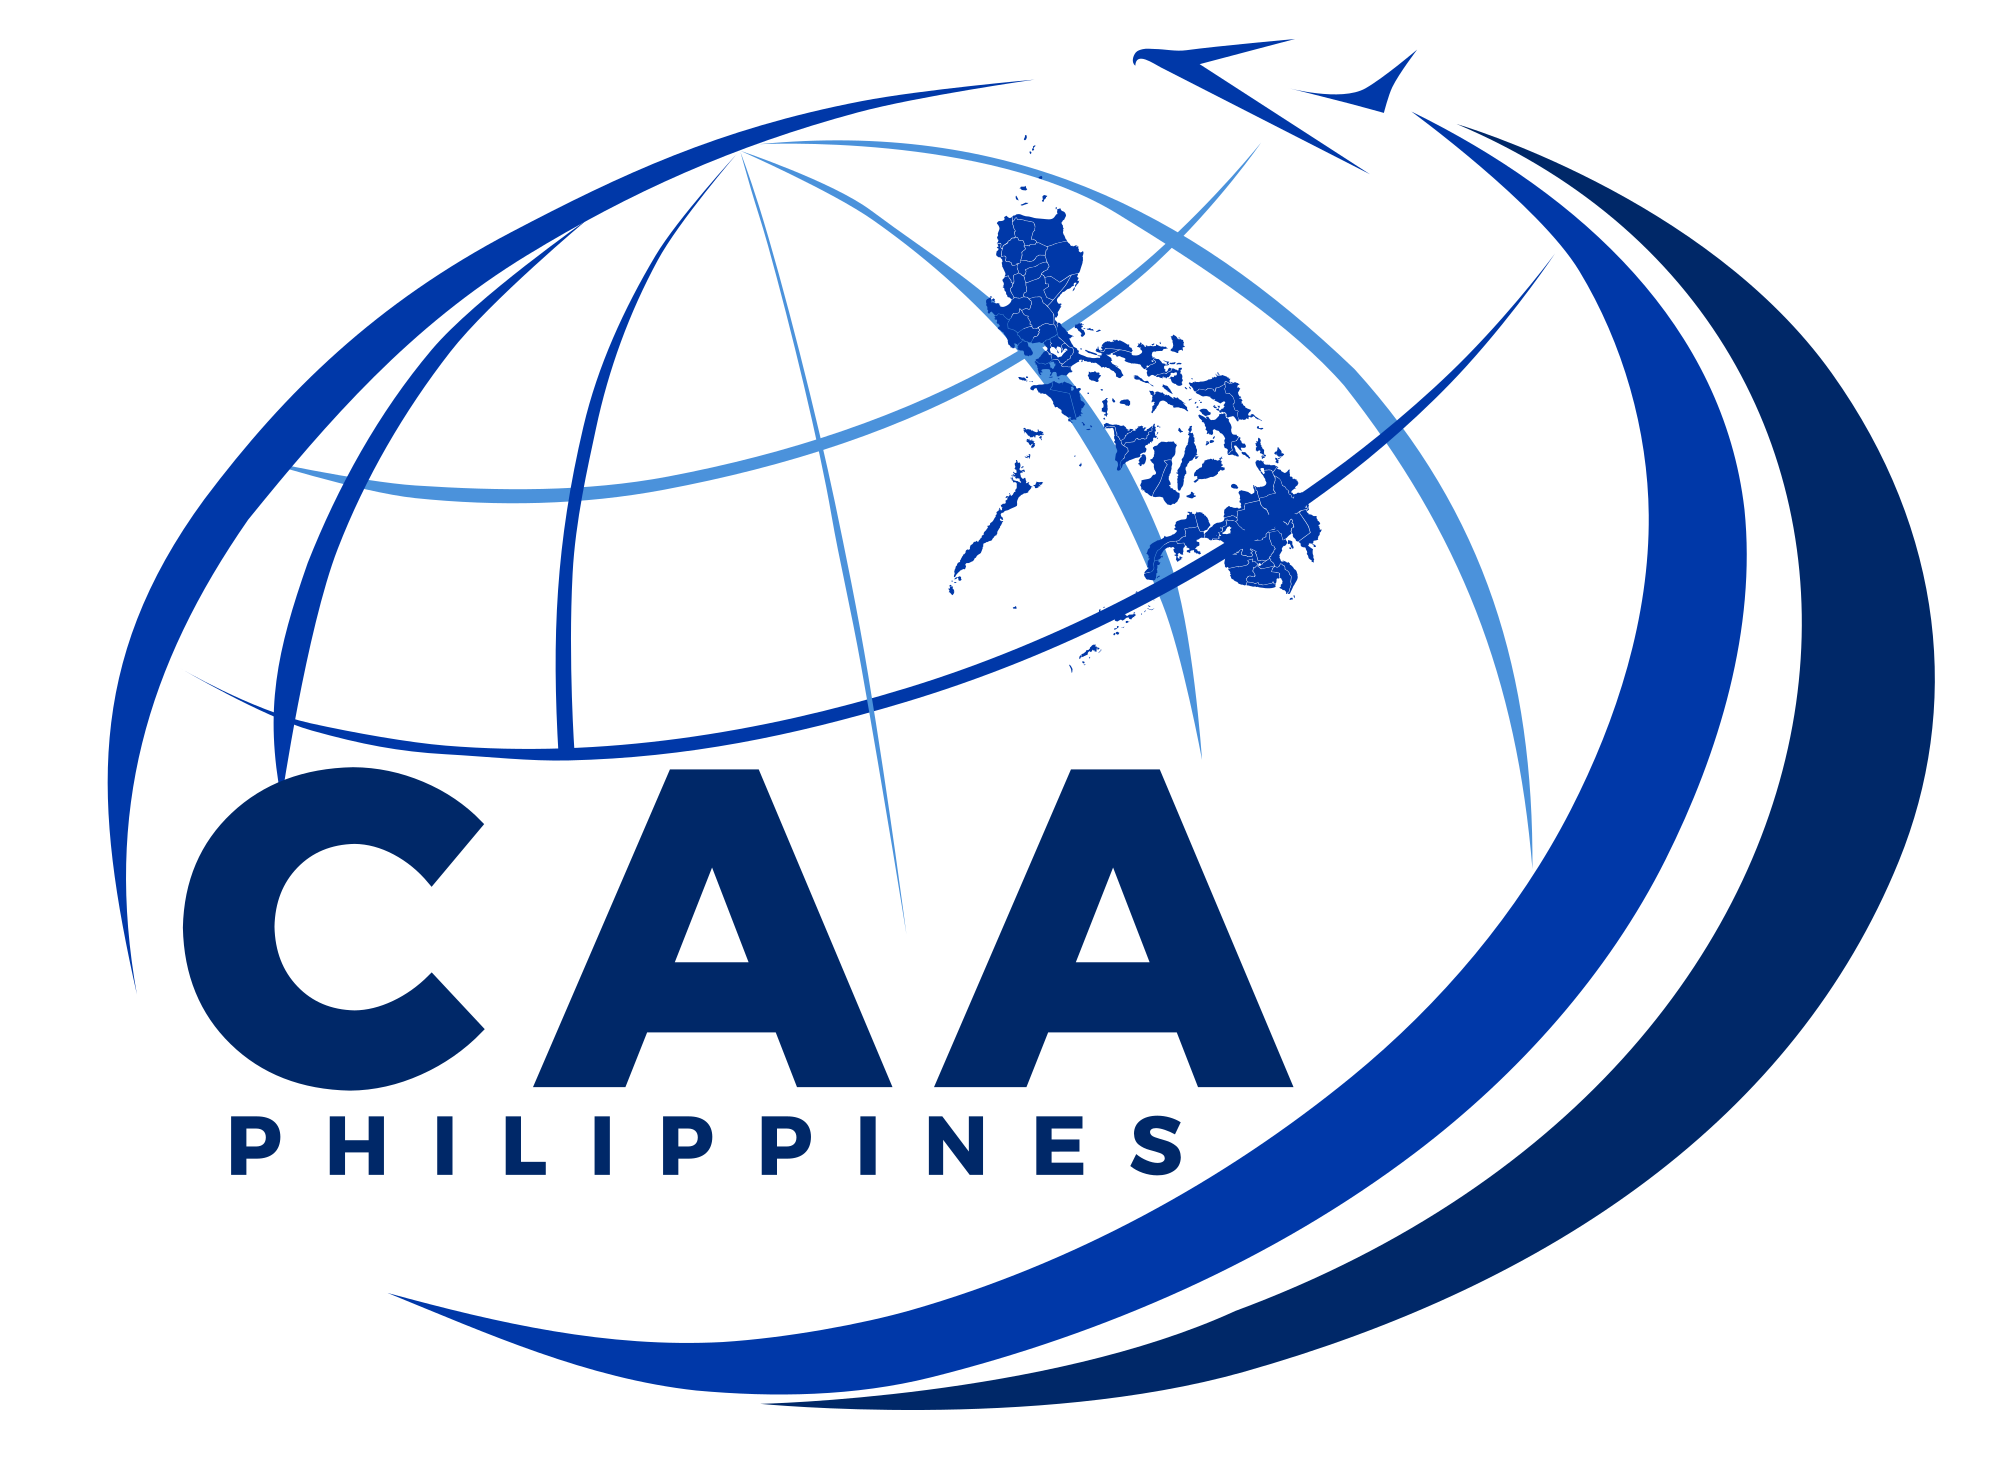 Civil Aviation Authority of the Philippines.